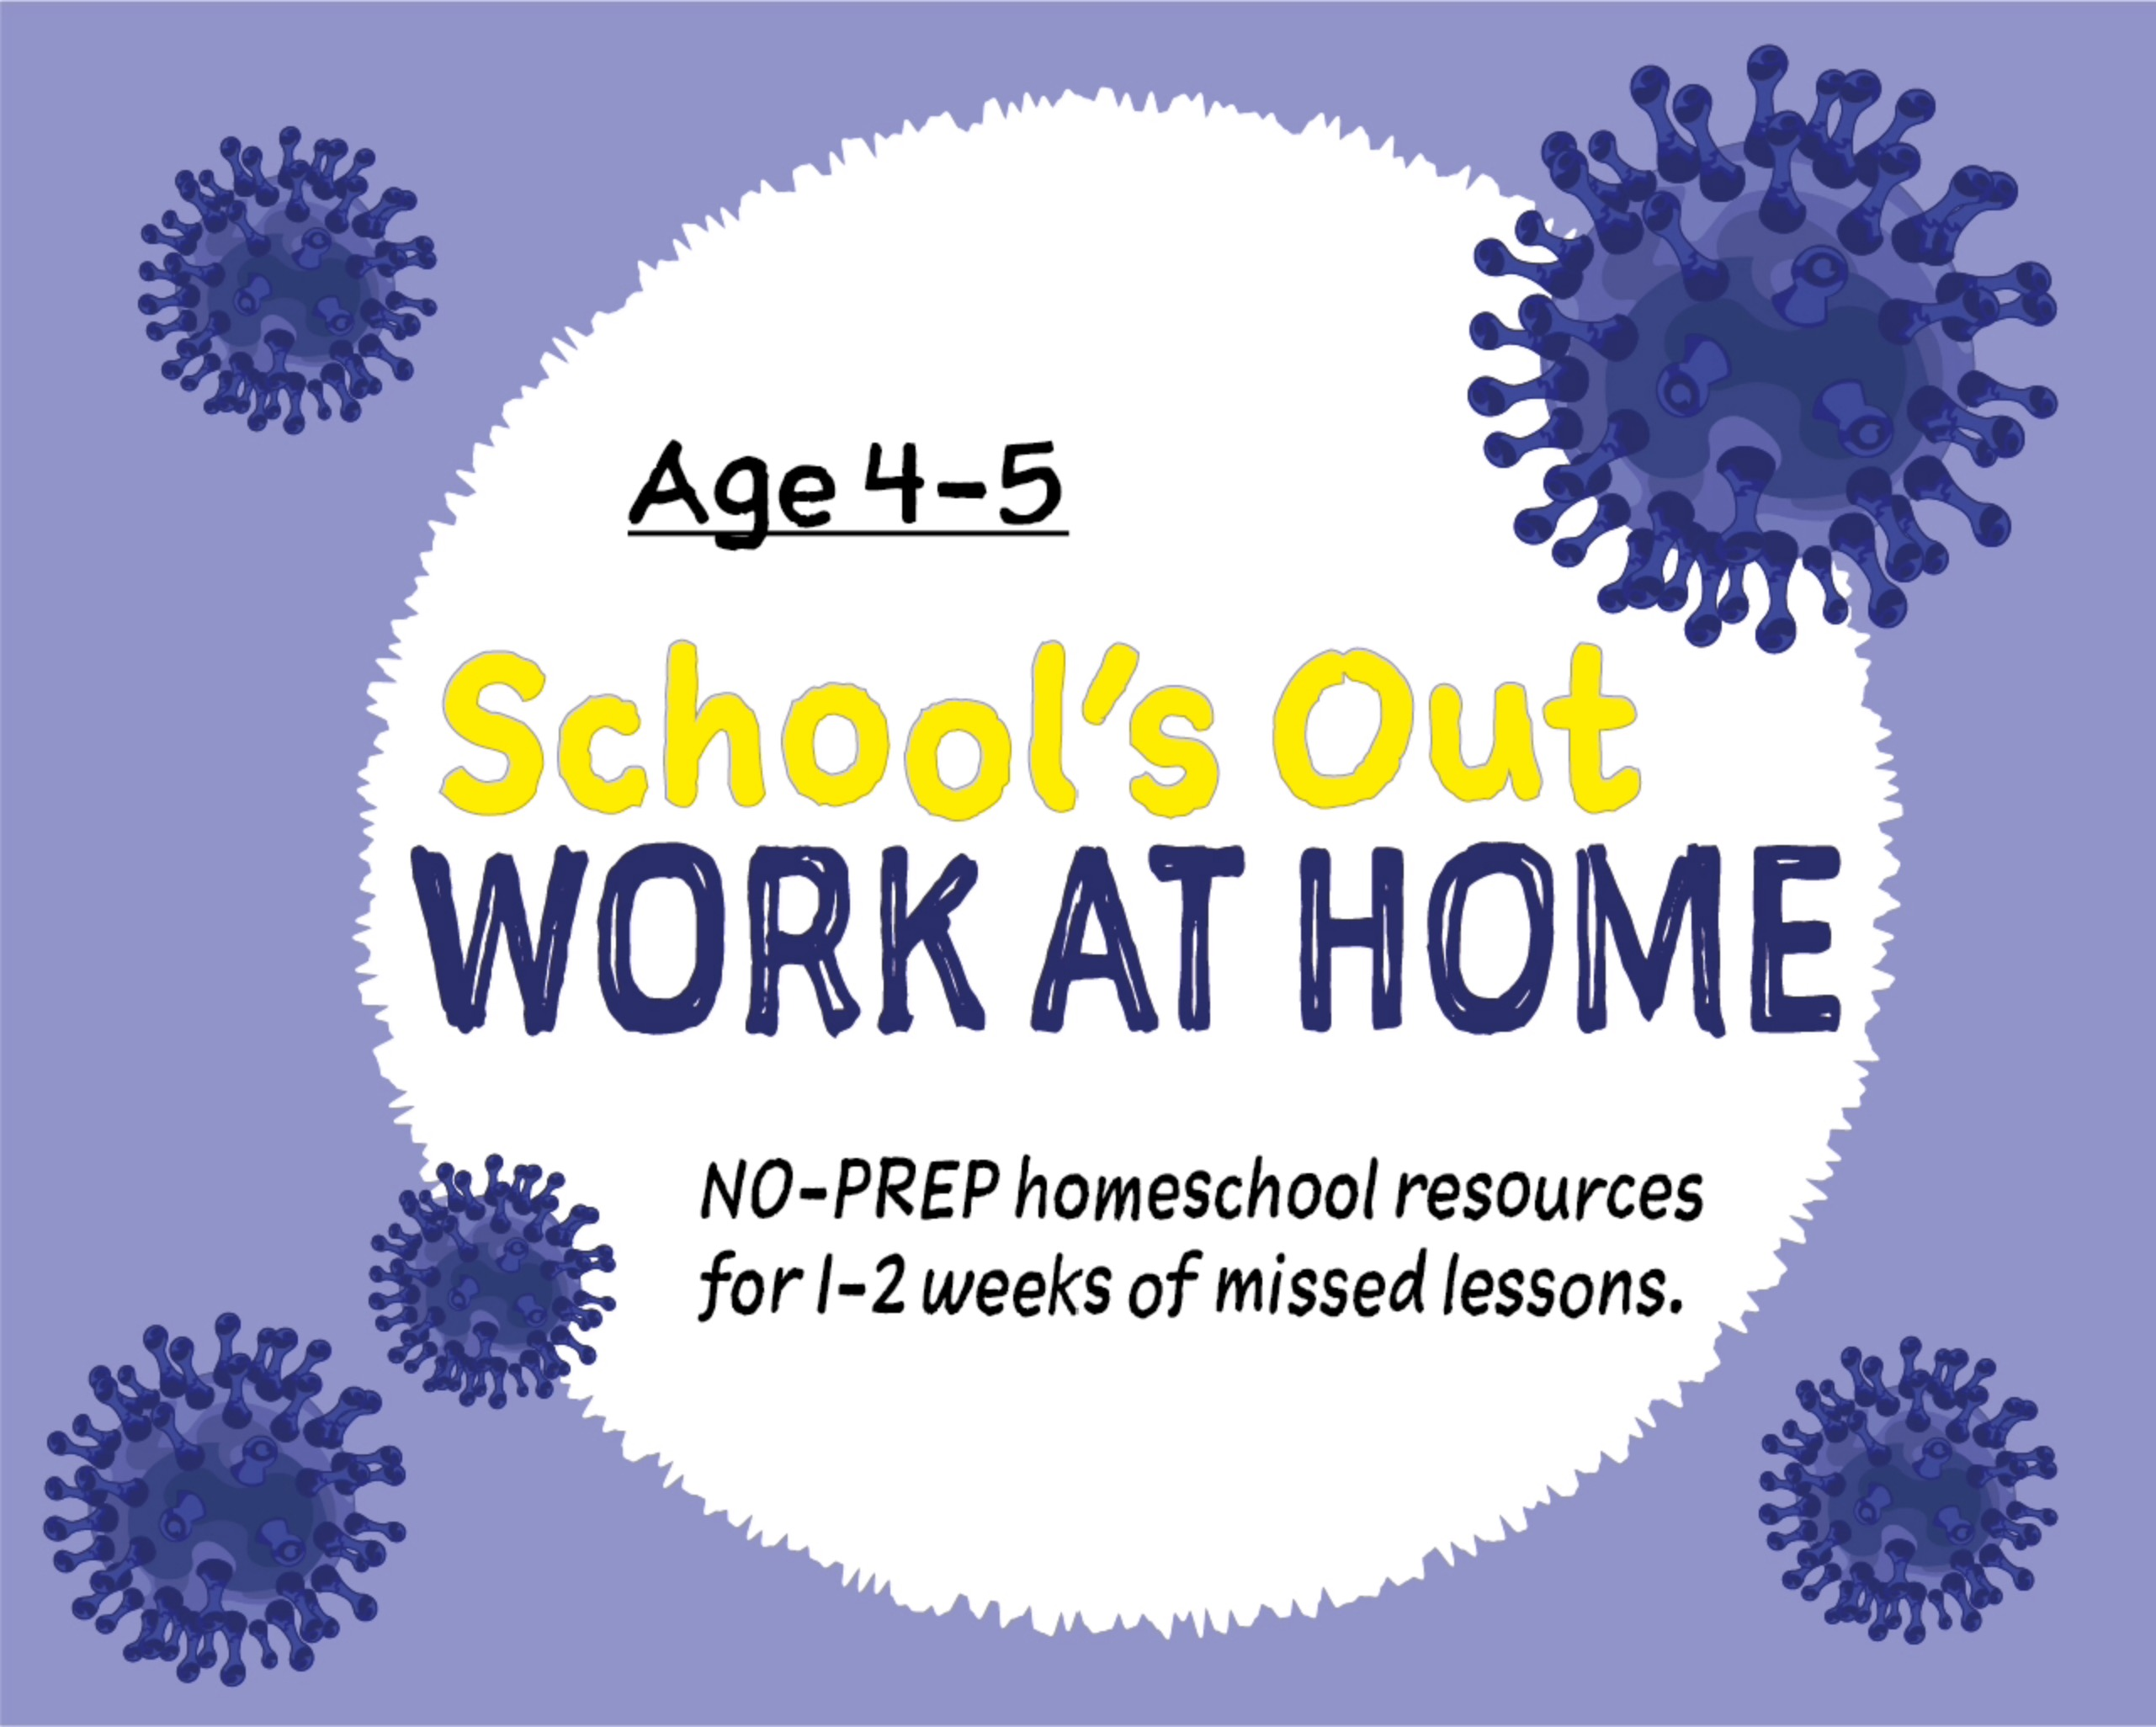 Schools Out For Coronavirus! Prepare For Schooling At Home (age 4-5 years) (Reception) (Pre K)